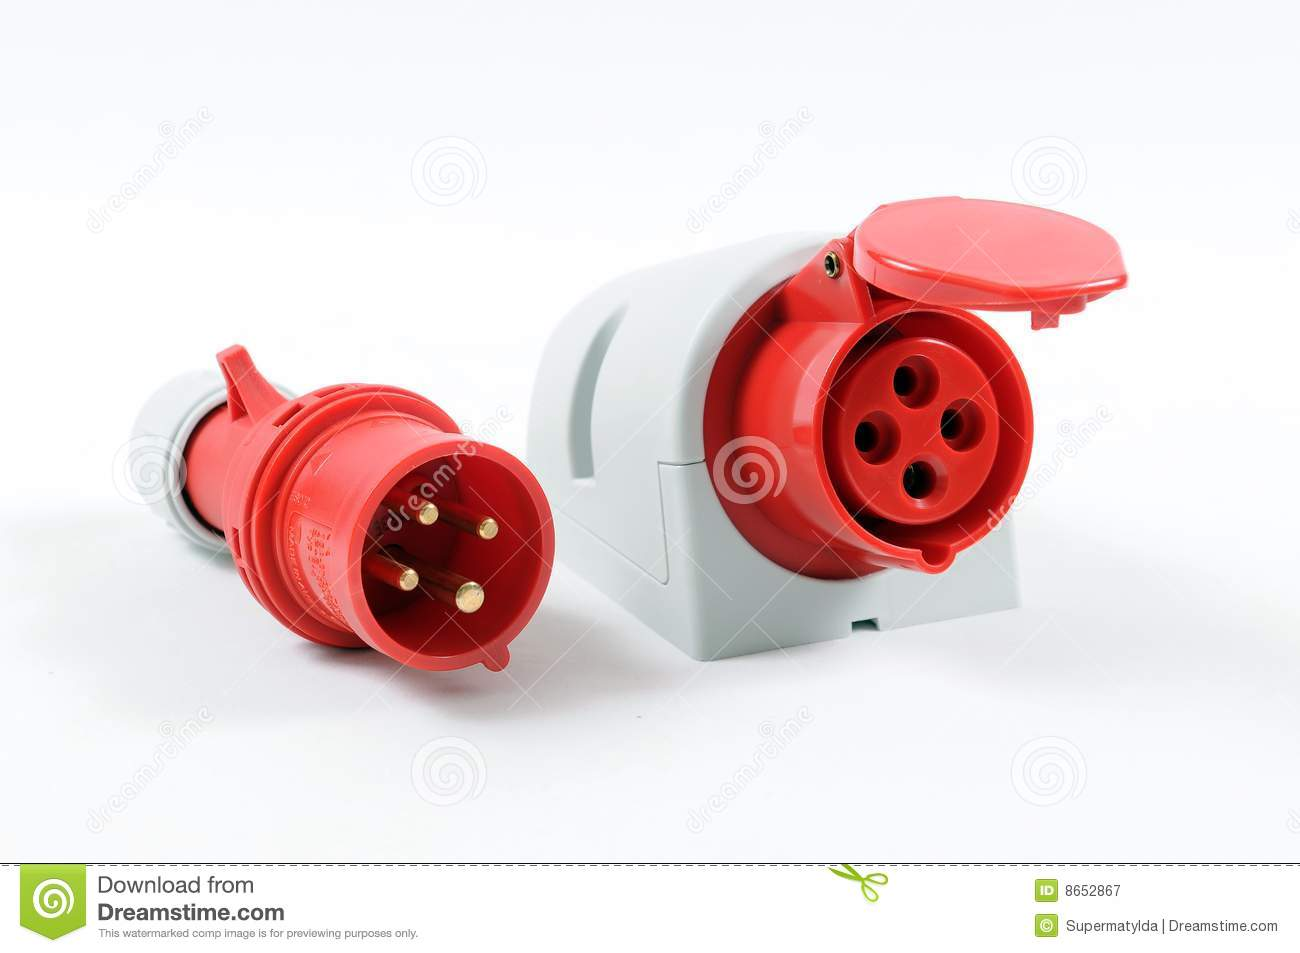 Red plug and socket